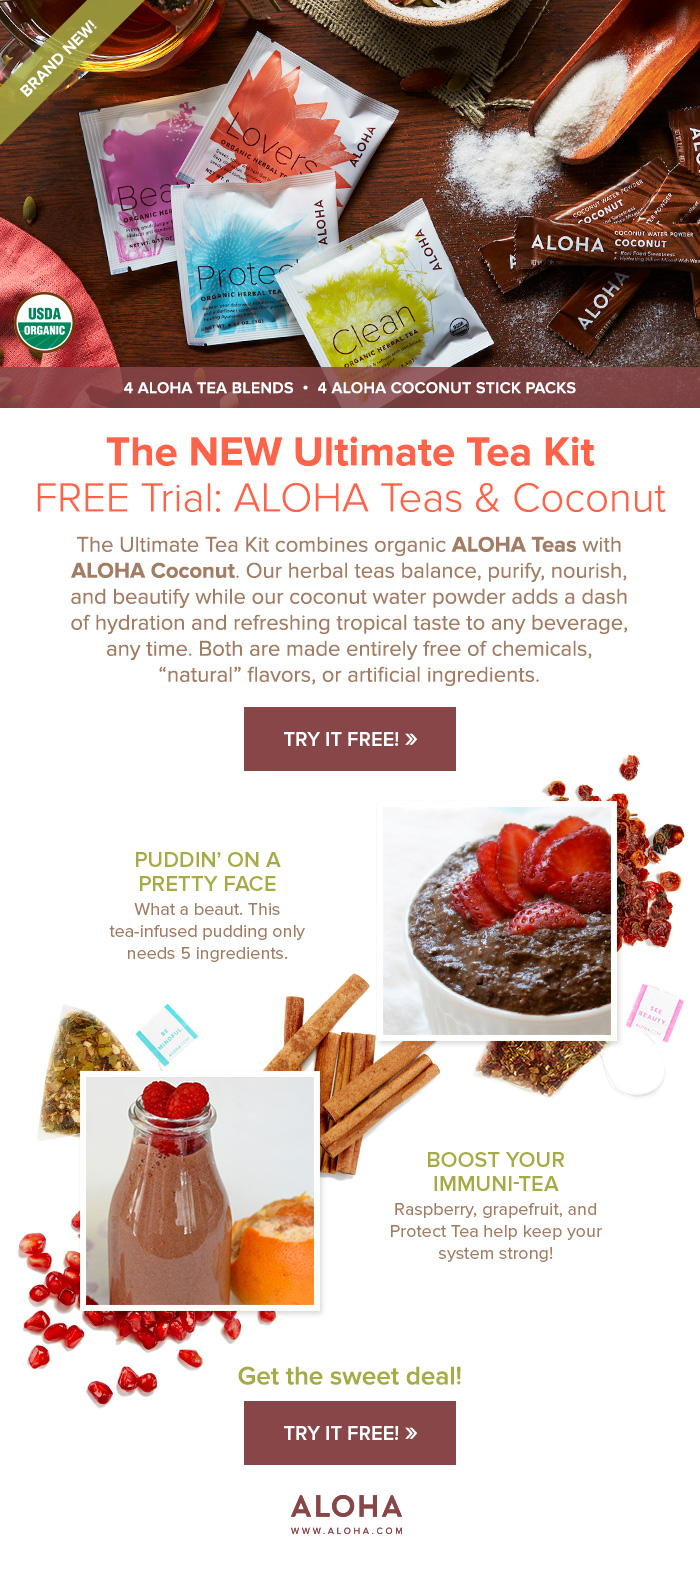 "Free Trial: ALOHA Teas and Coconut. The Ultimate Tea Kit combines organic ALOHA Teas with ALOHA Coconut. Our herbal teas balance, purify, nourish, and beautify while our coconut water powder adds a dash of hydration and refreshing tropical taste to any beverage, any time. Both are made entirely free of chemicals, ""natural"" flavors, or artificial ingredients."